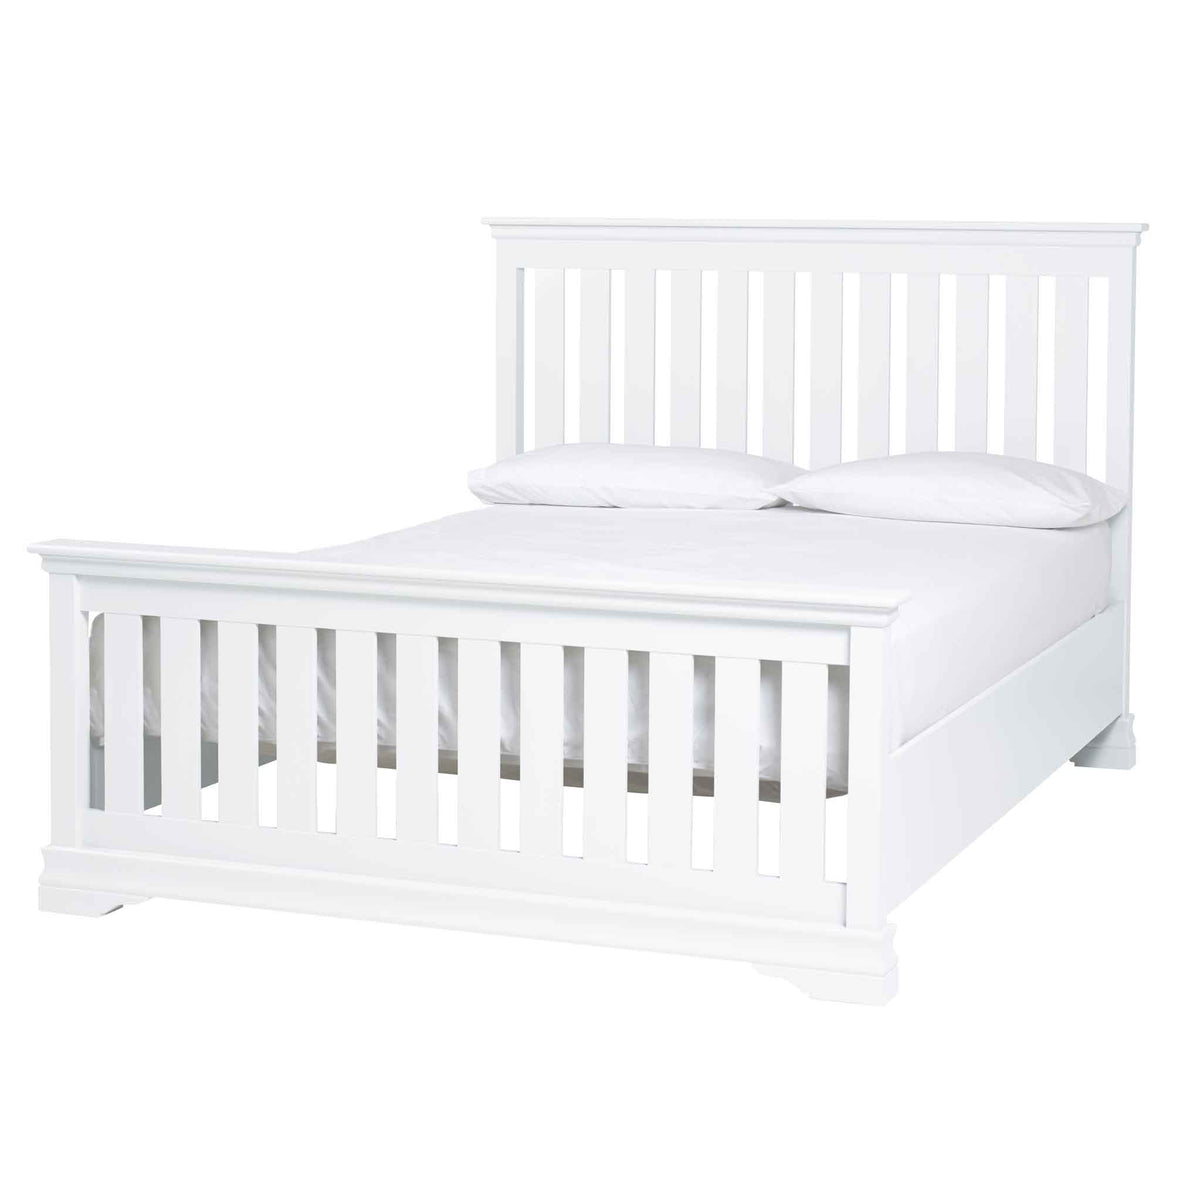 Melrose White 5ft Slatted Bed Frame from Roseland Furniture